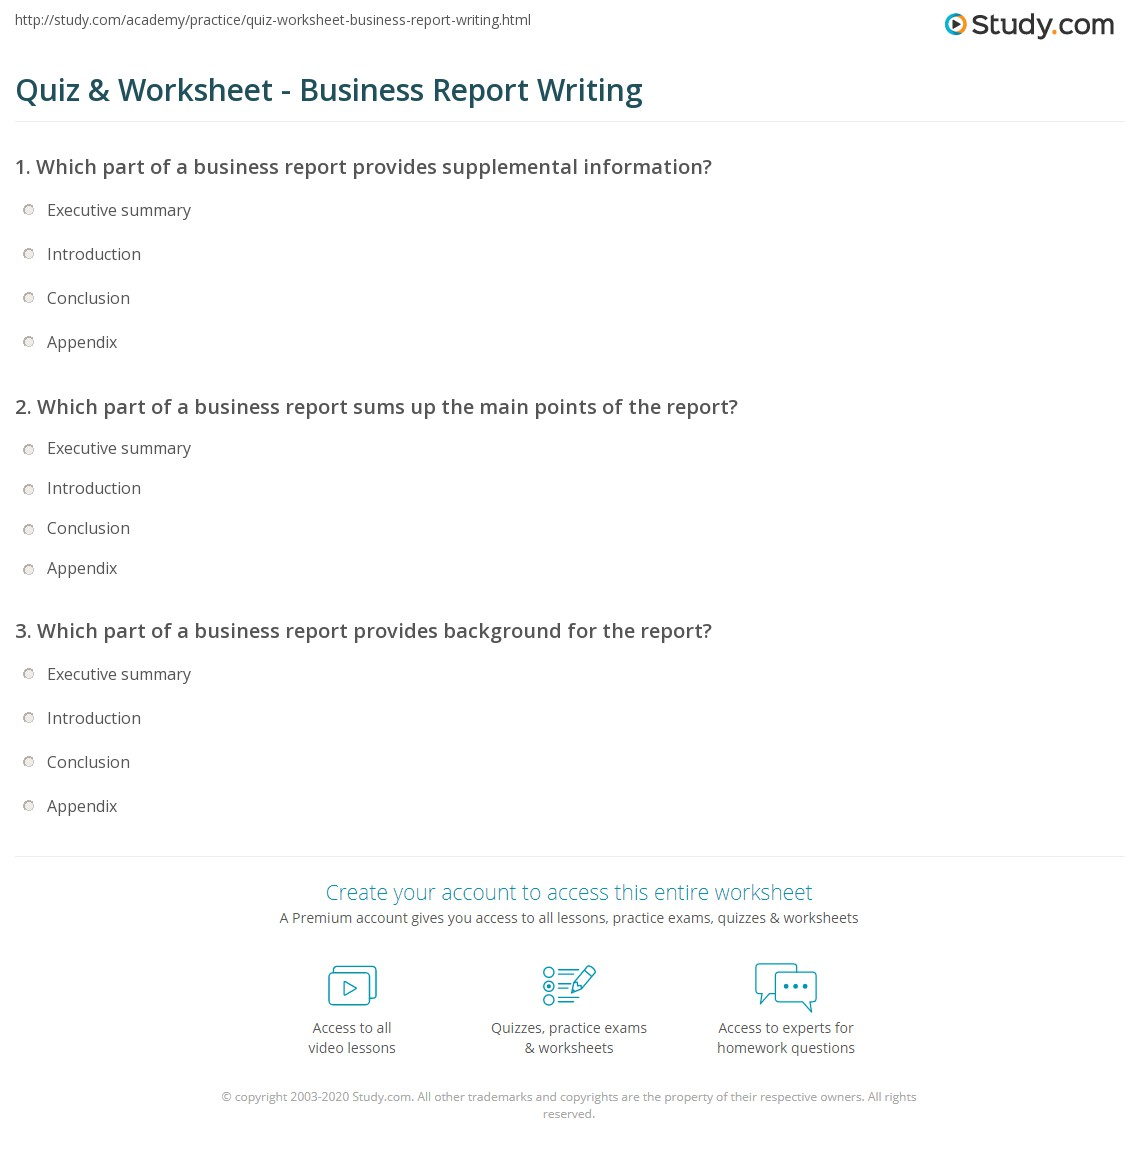 Which part of a business report sums up the main points of the ...